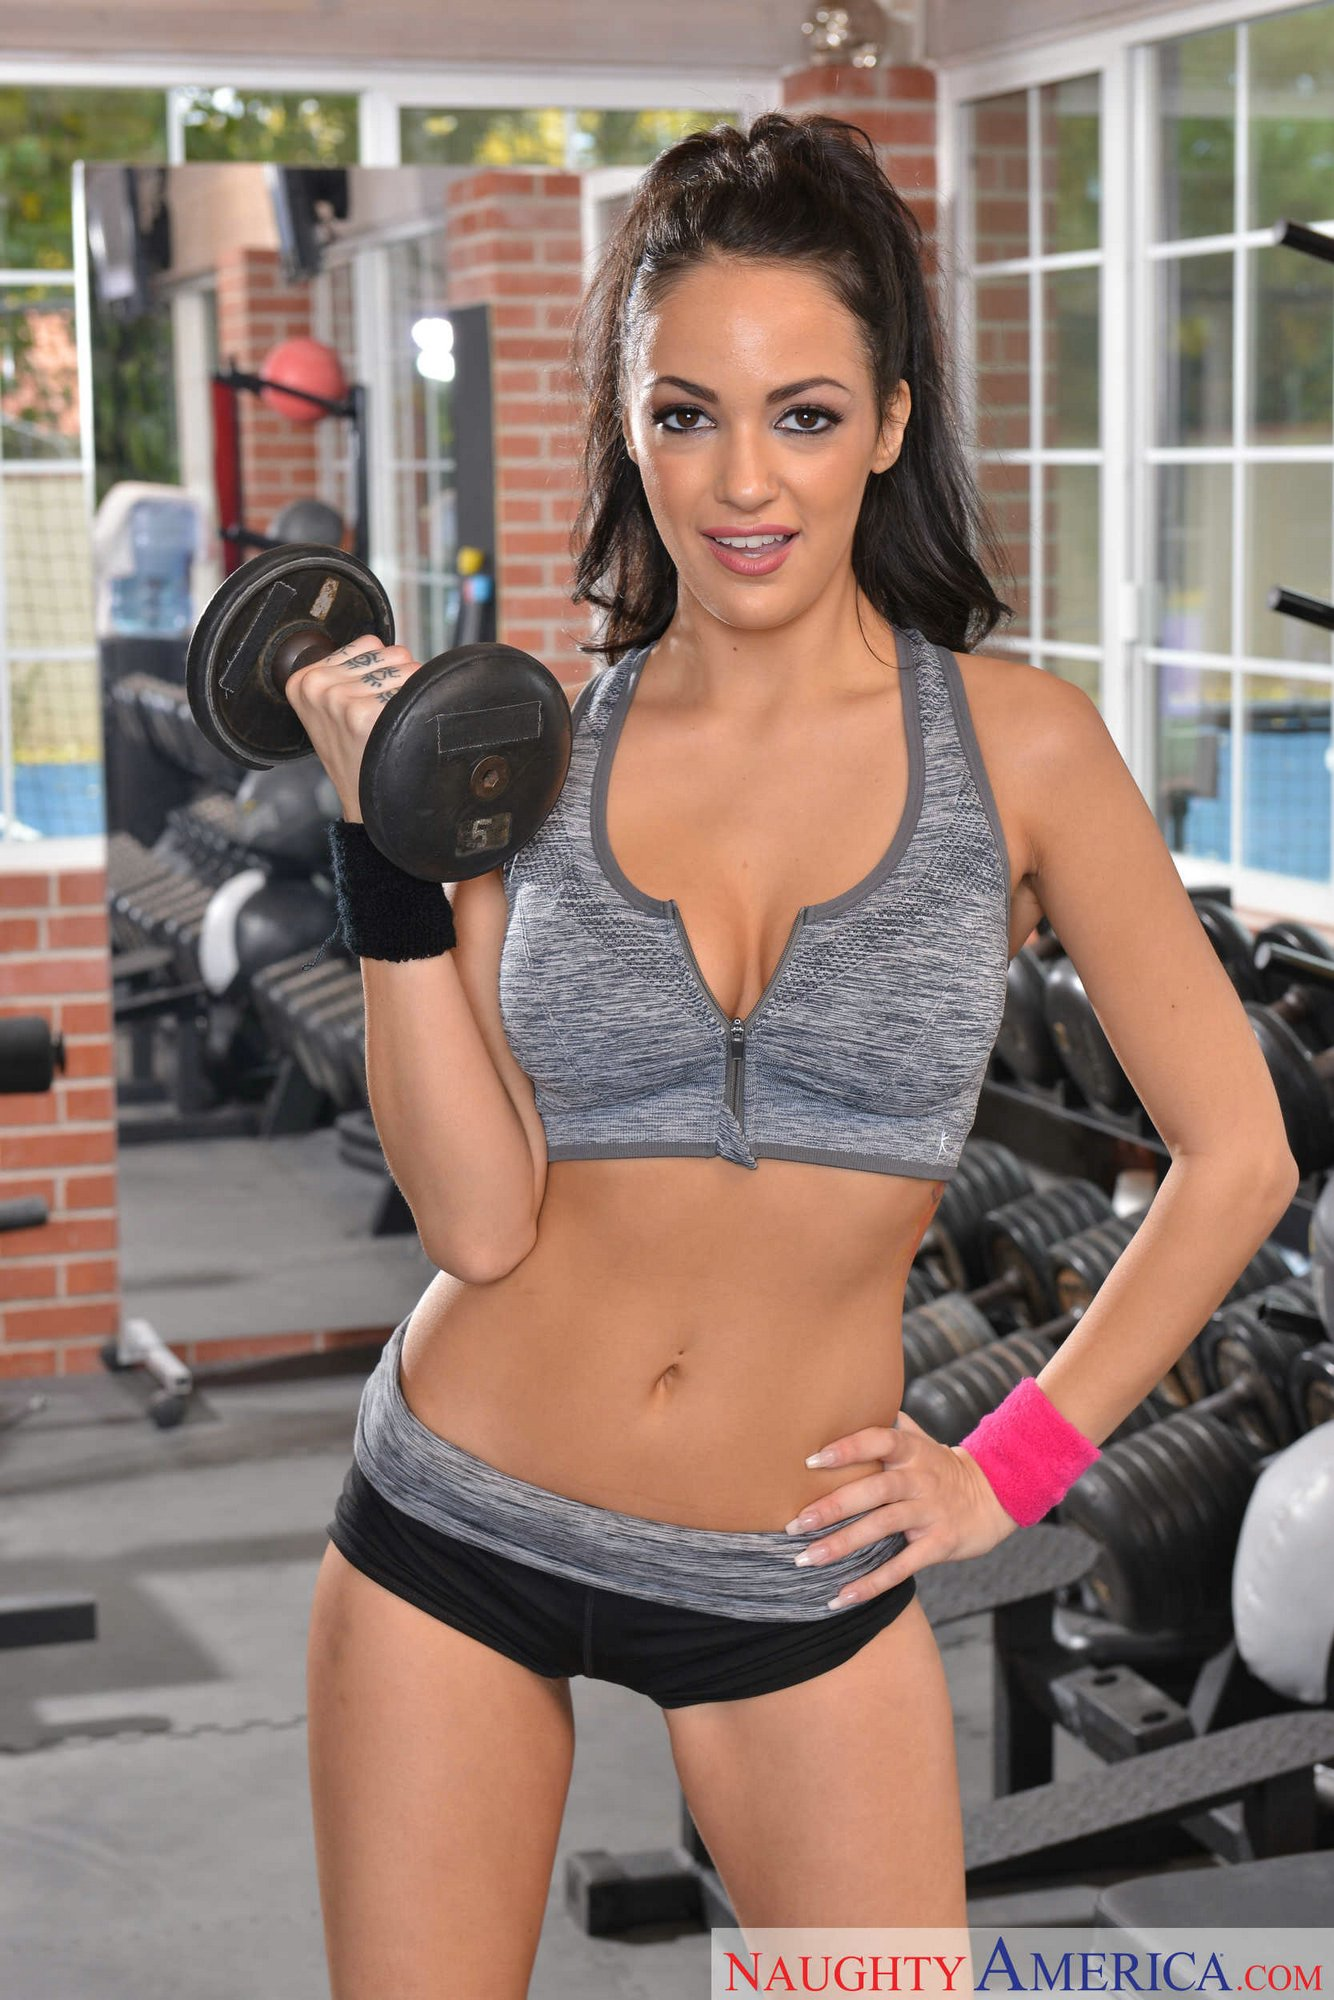 Threesome in the gym photos